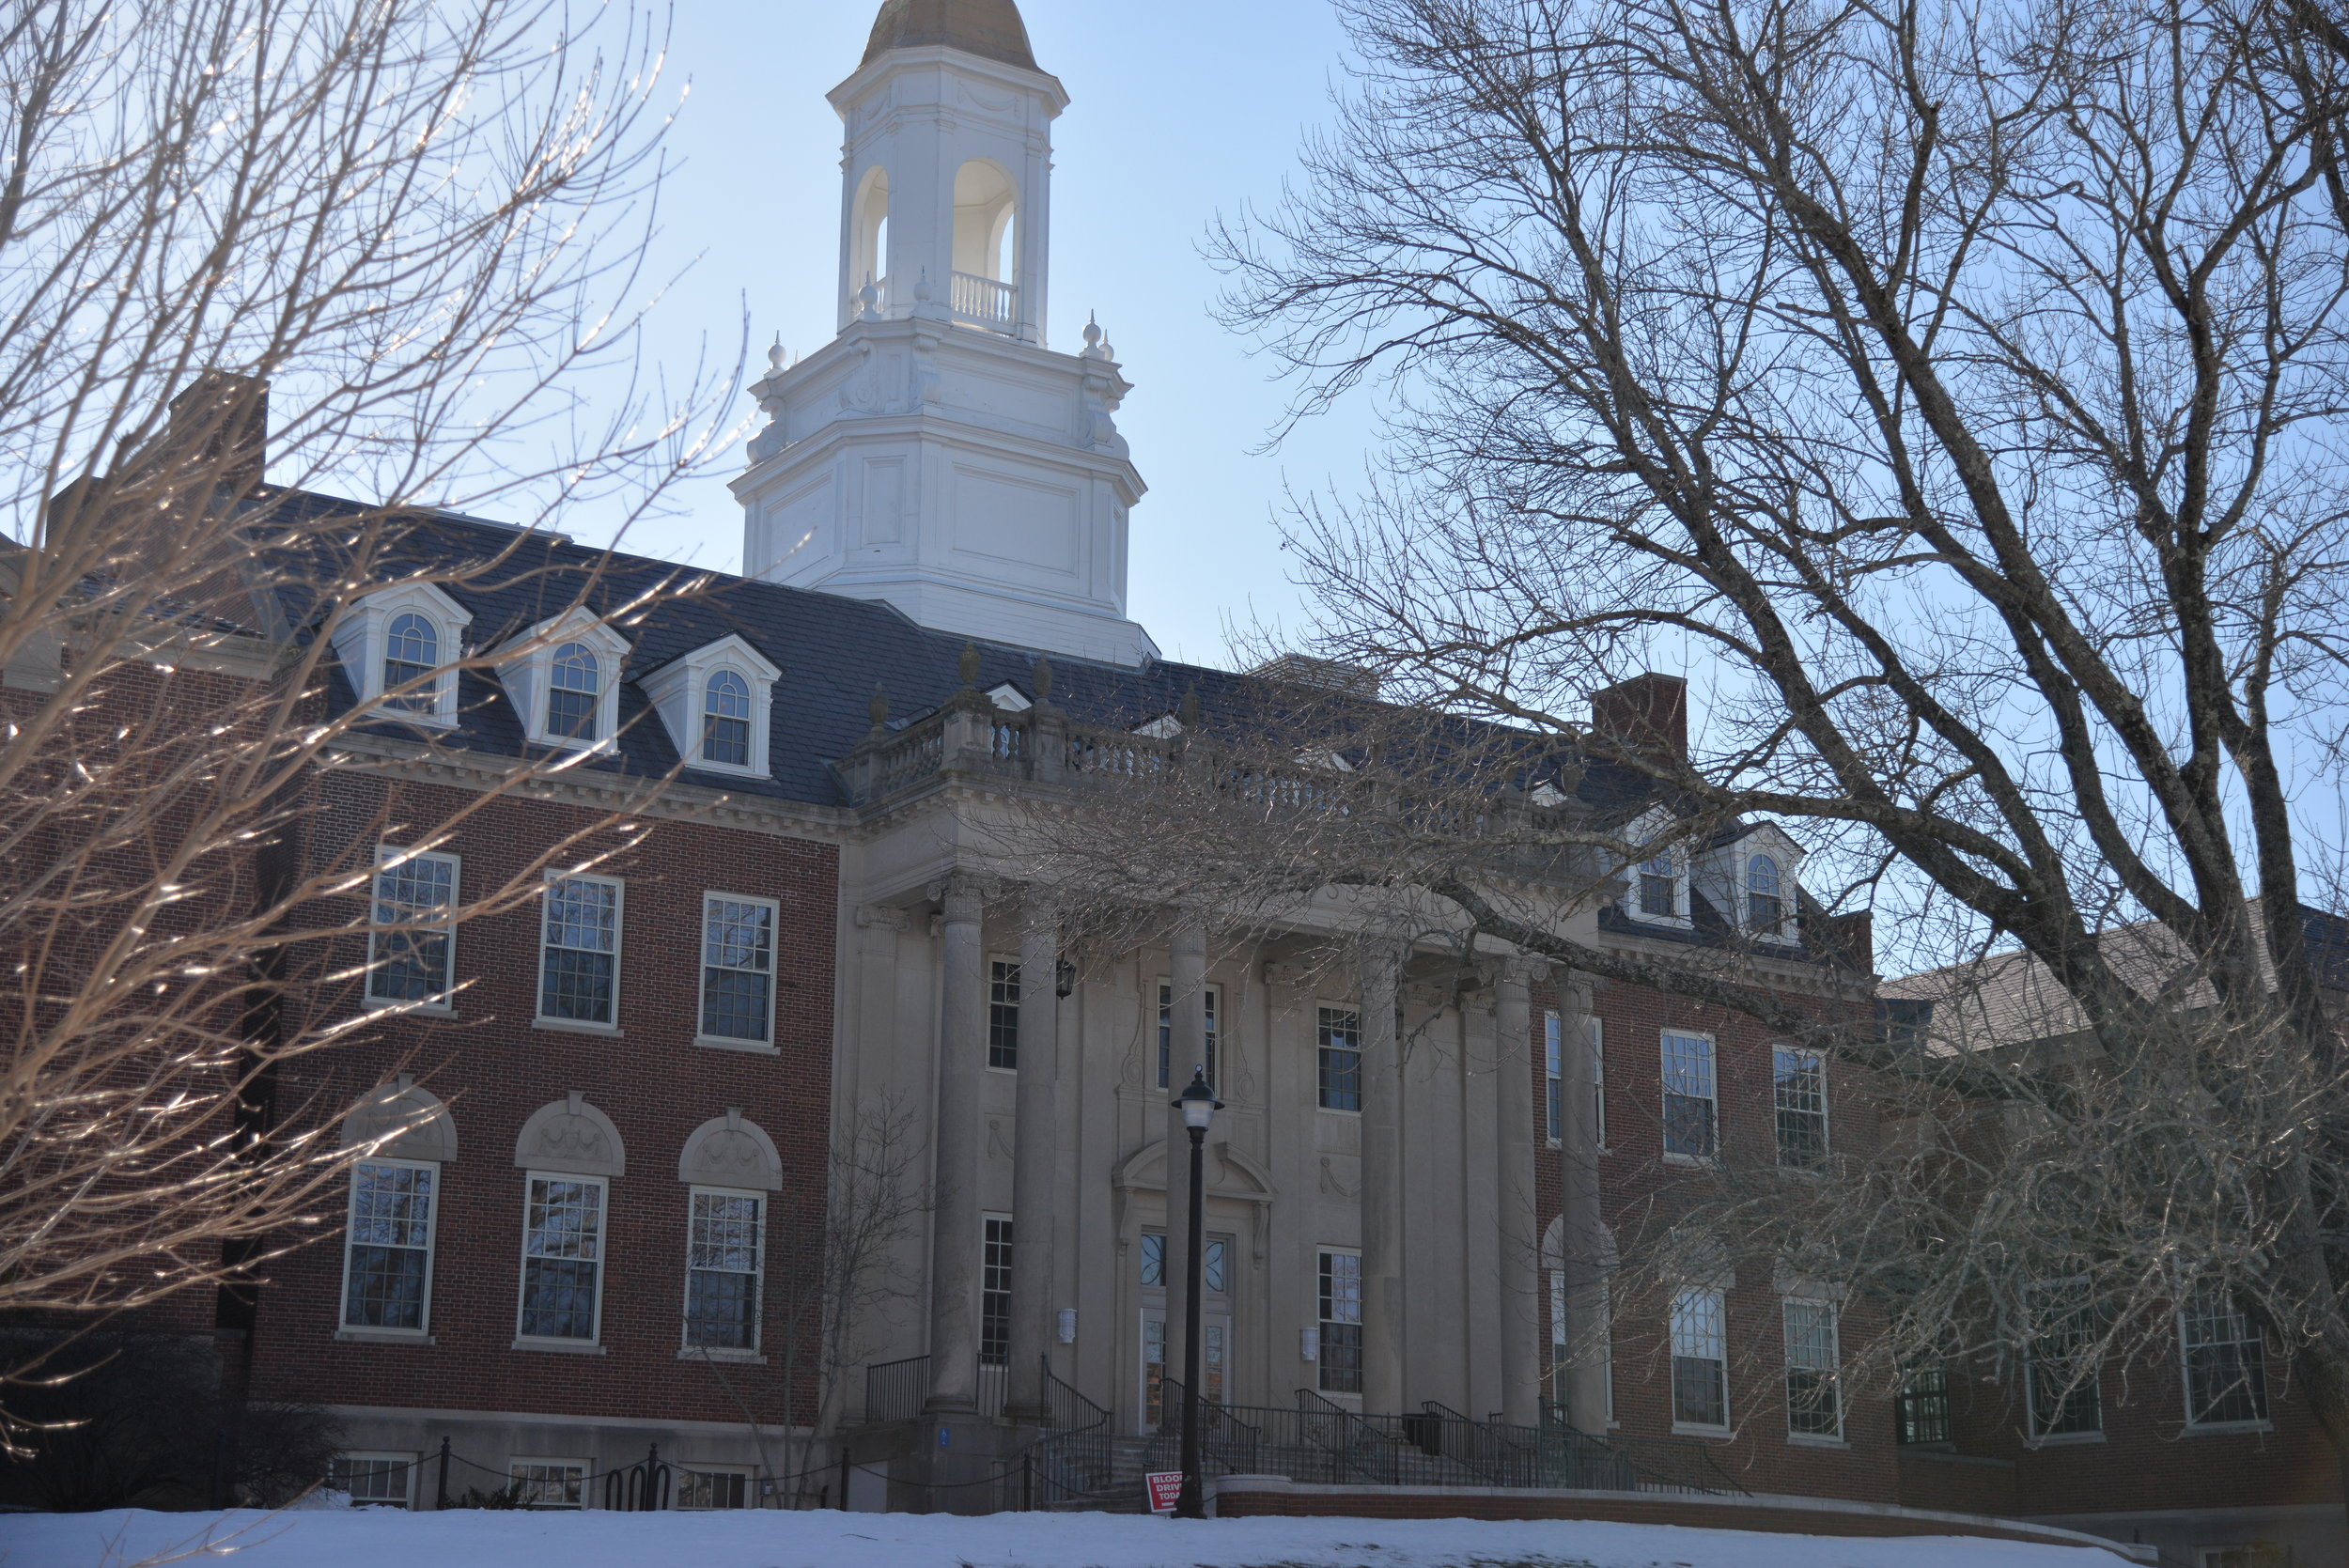 The director of animal care services at the University of Connecticut, Curtis W. Schondelmeyer, is set to pay $400,000 in defamation fines by a Middlesex Superior Court jury. (File photo/The Daily Campus)